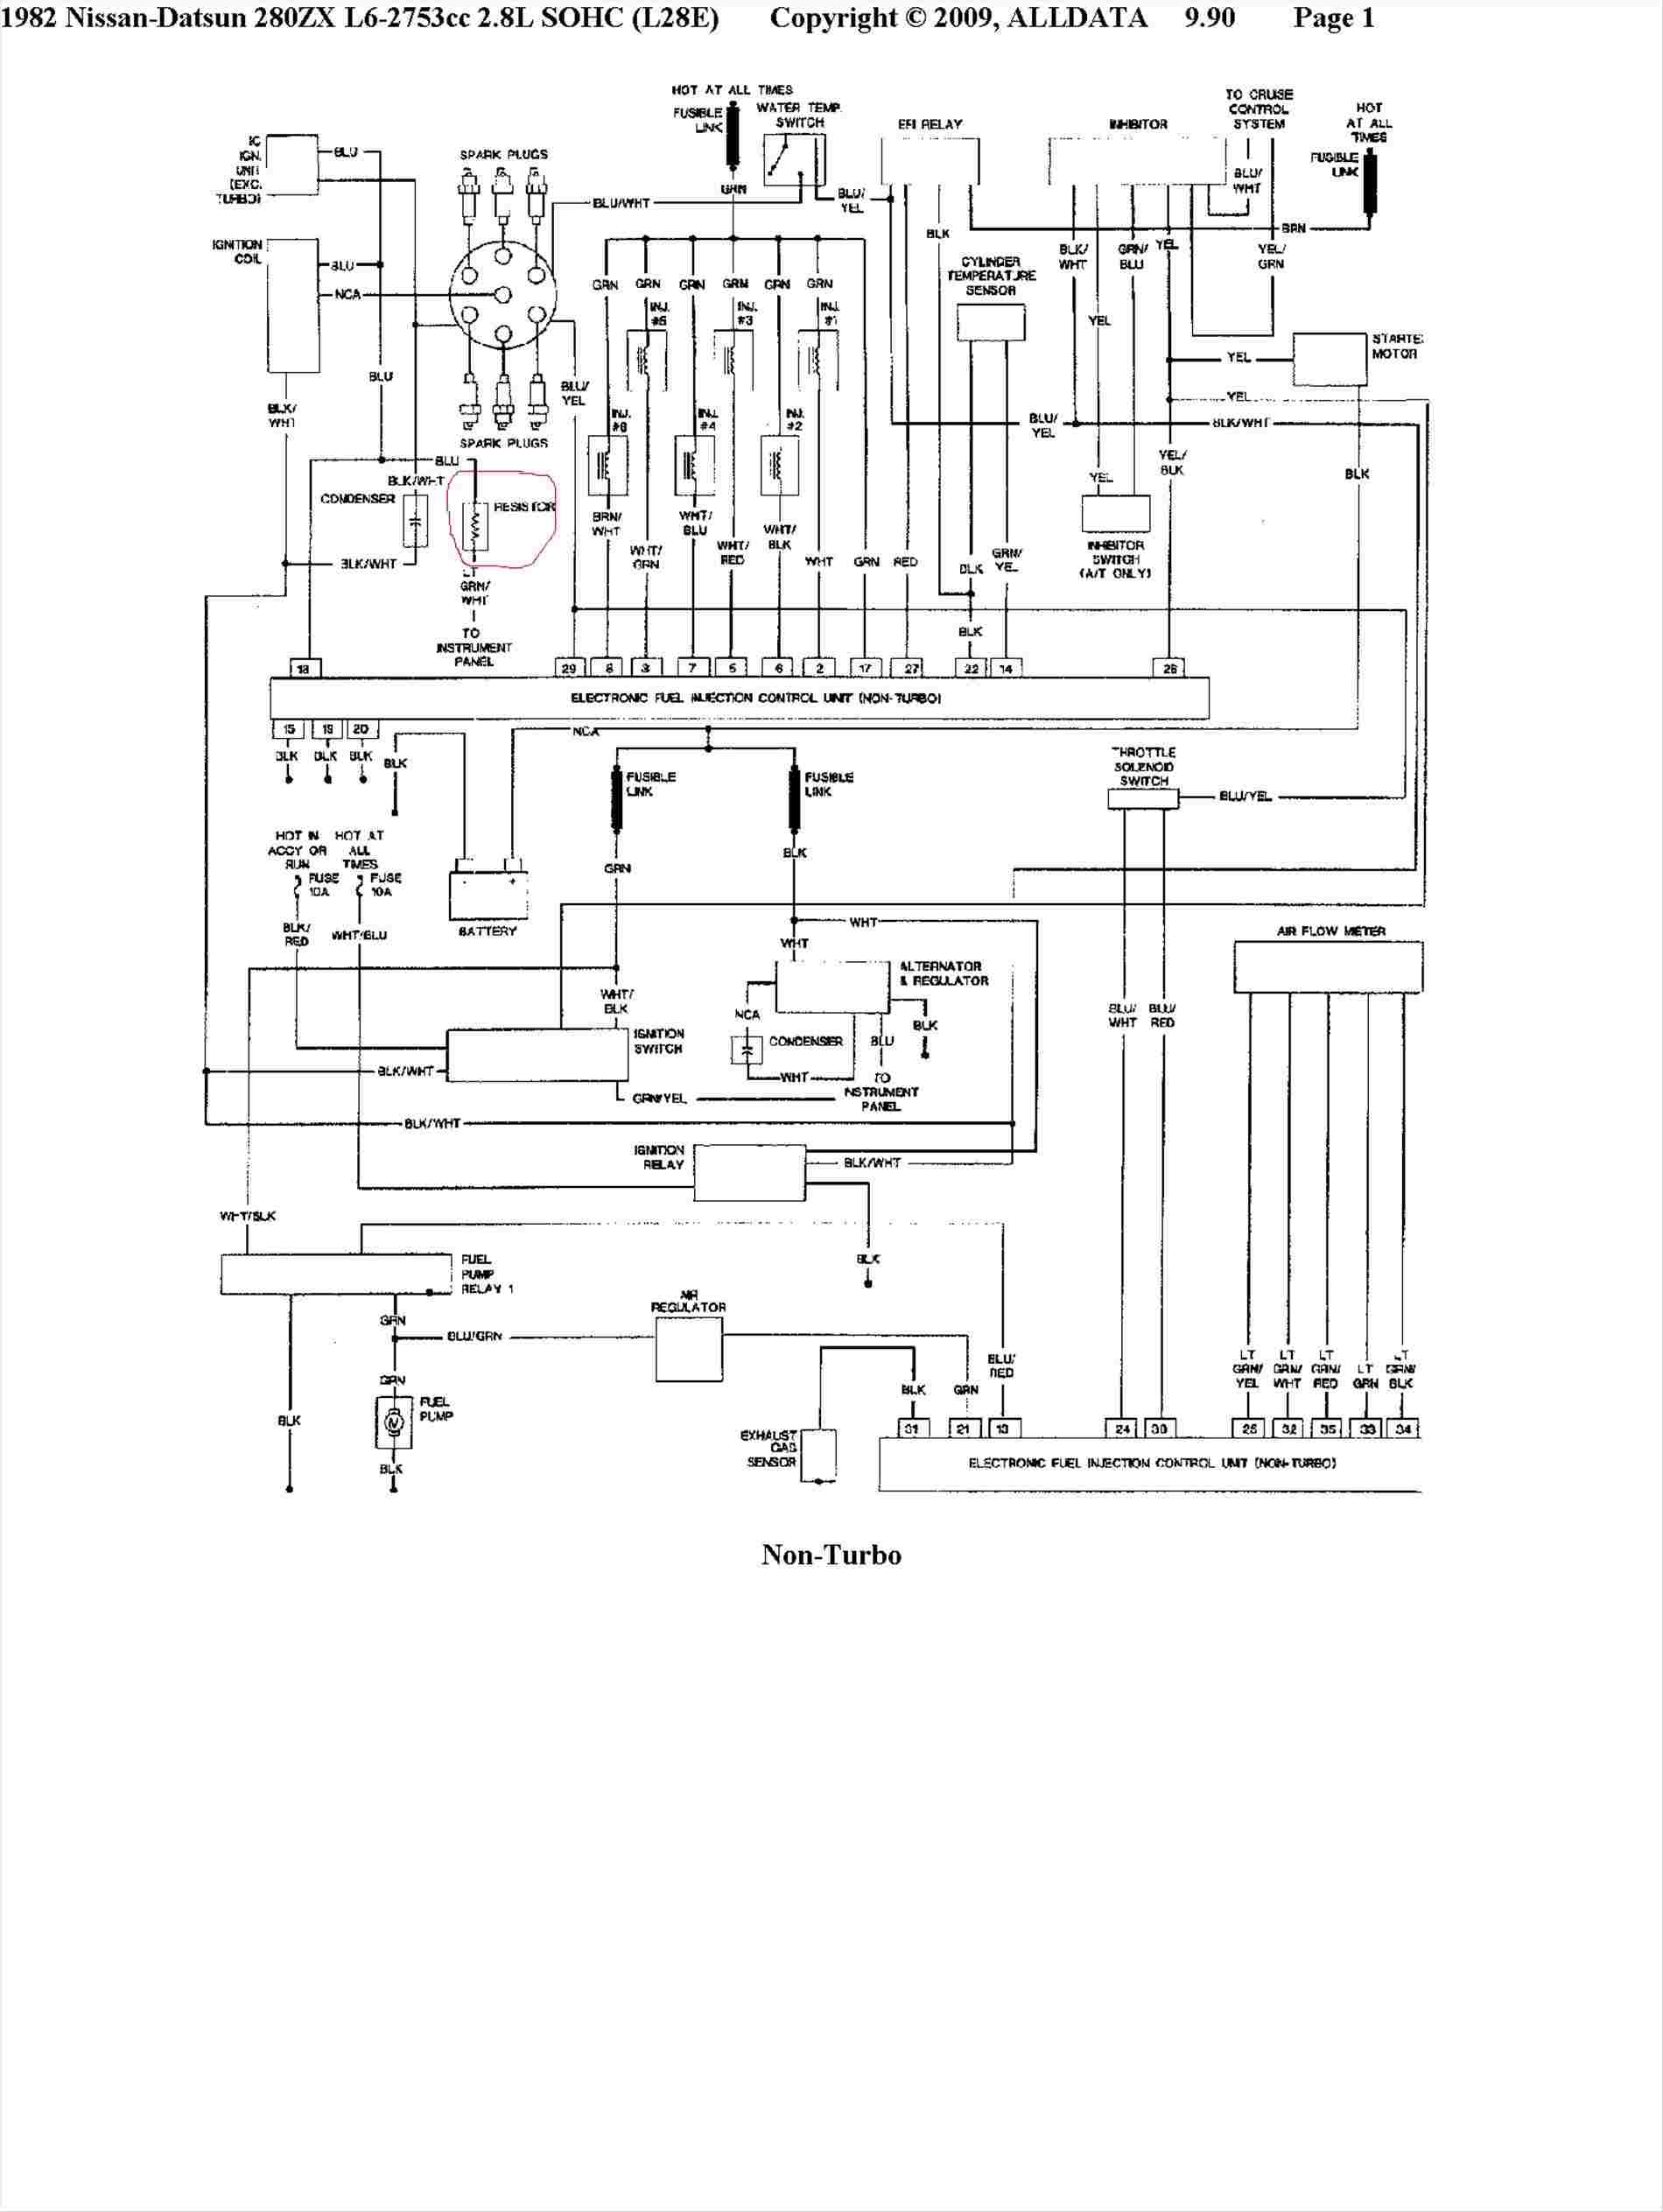 Lionel Train Zw Transformers Wiring Diagram | Wiring Diagram - Lionel Train Wiring Diagram